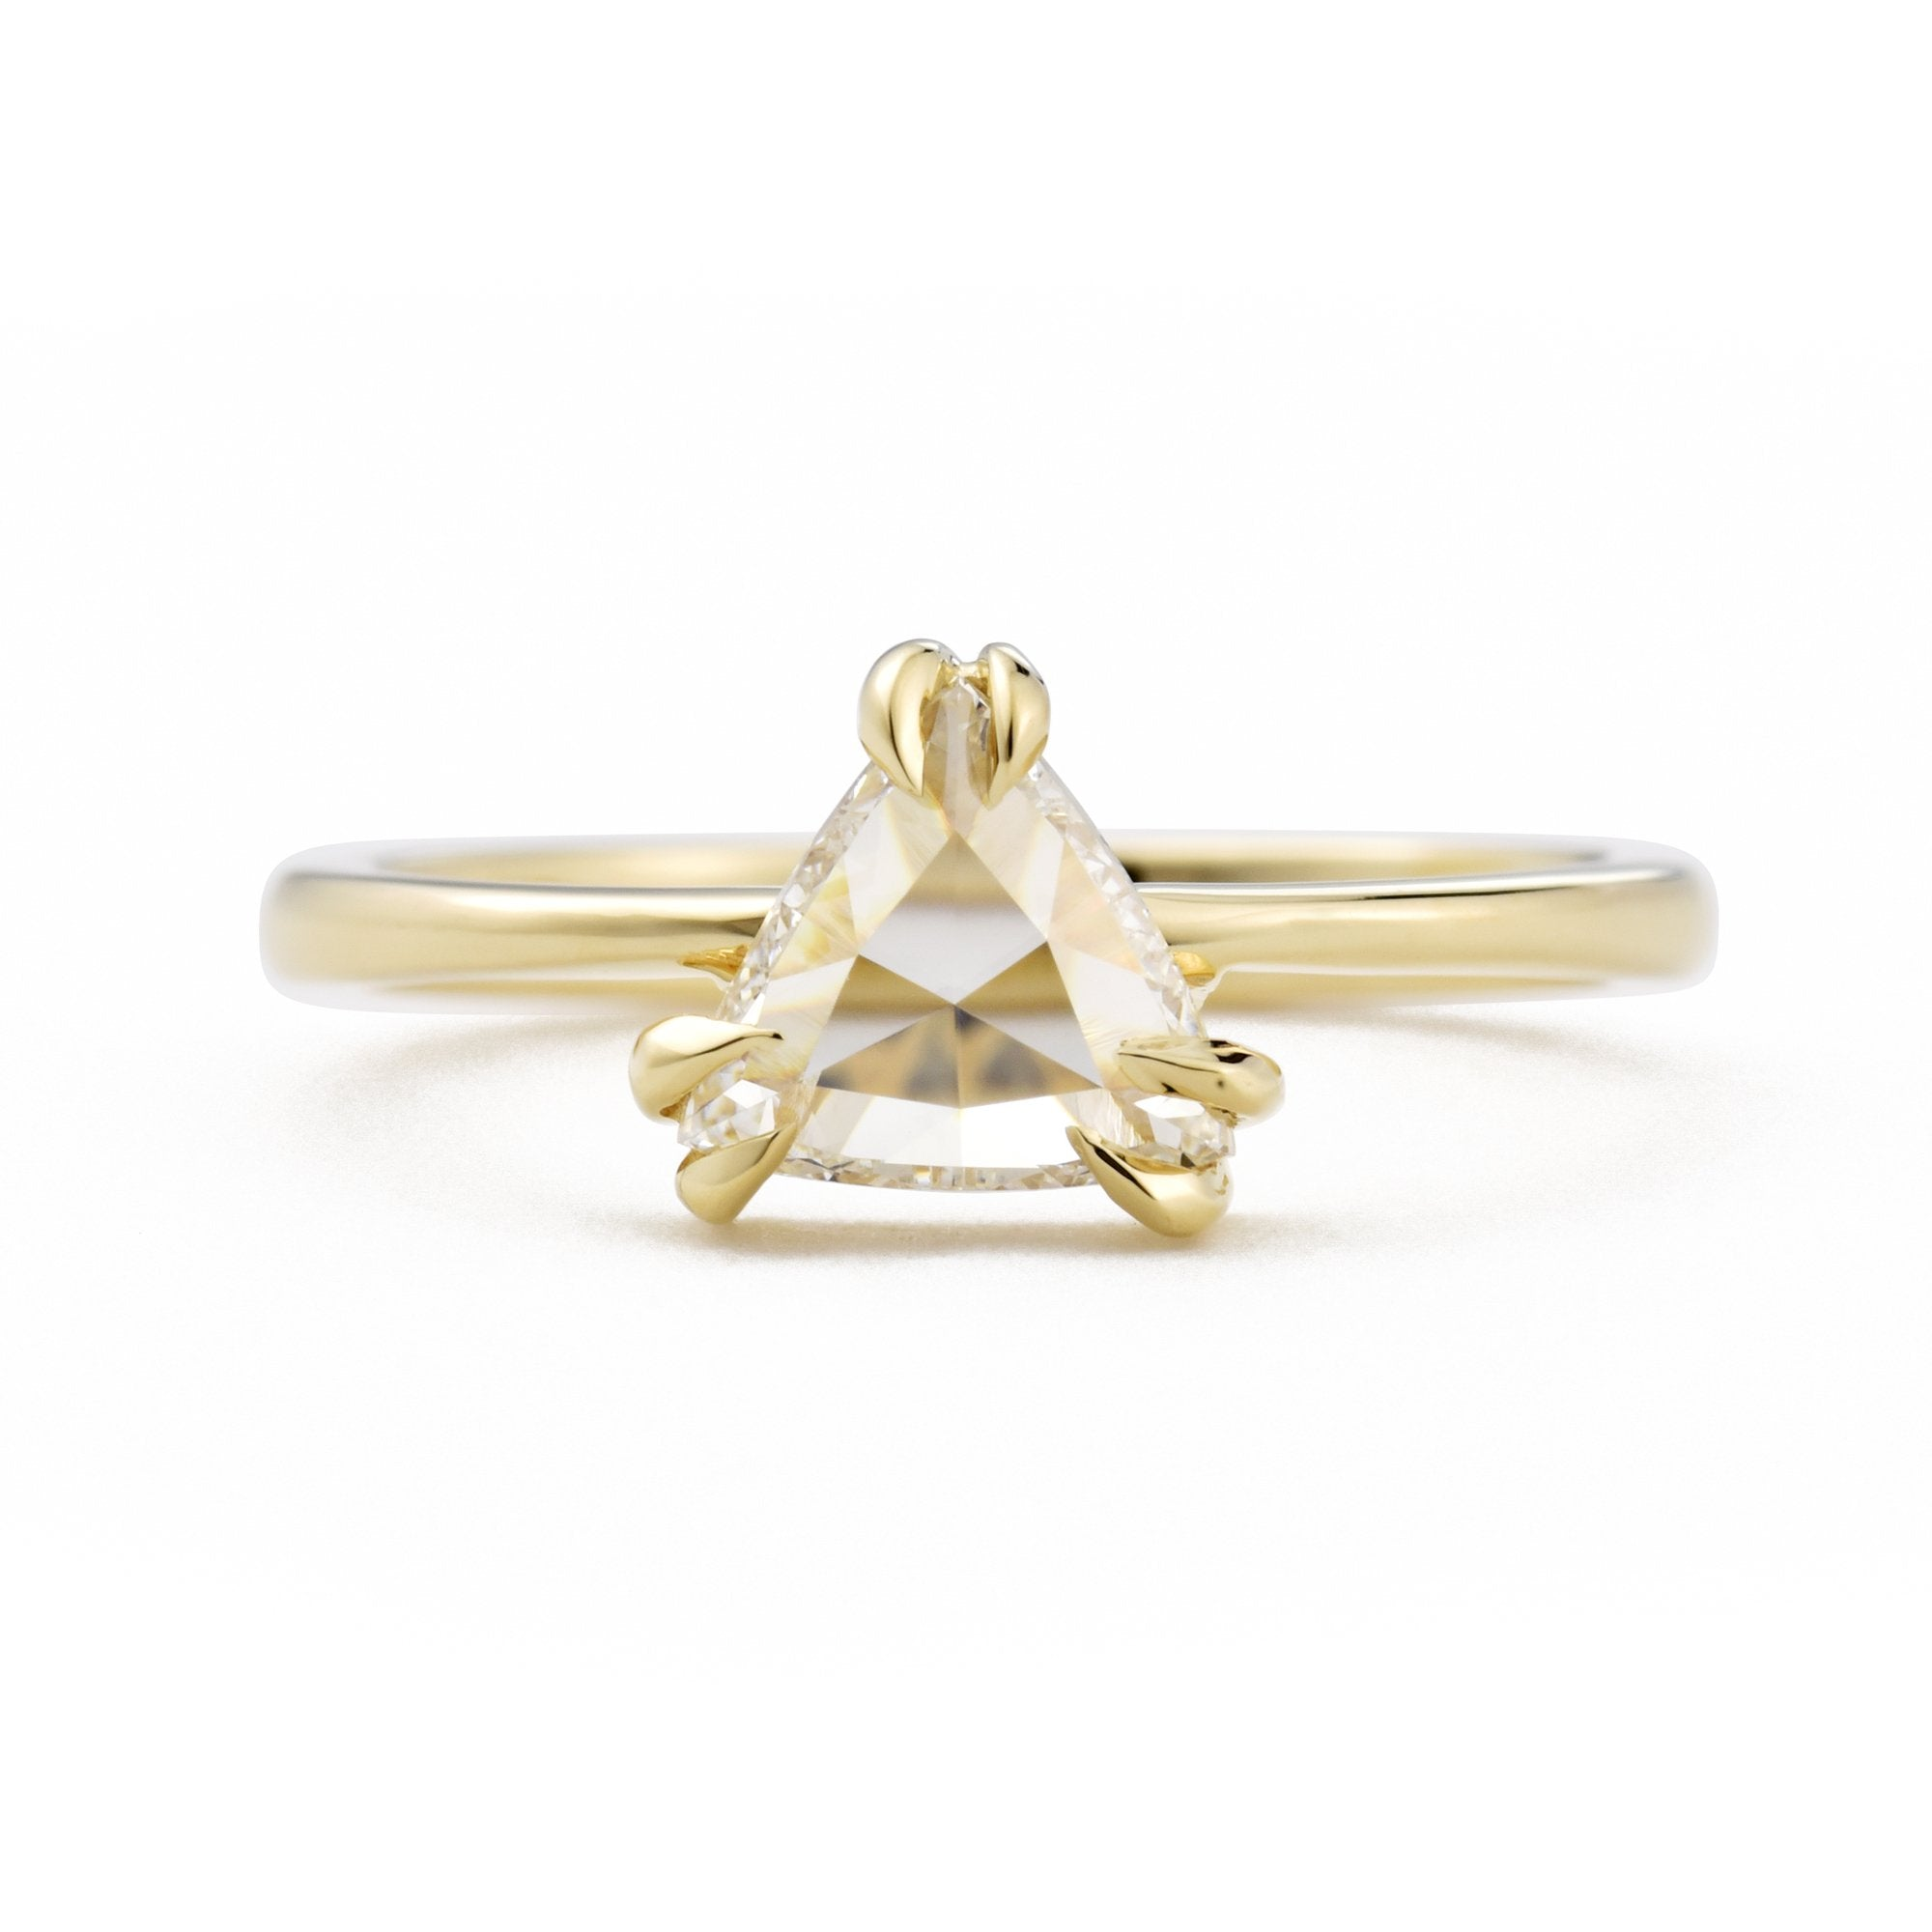 0.59ct Eva Colorless Trillion Diamond Engagement Ring in 14k Yellow Gold